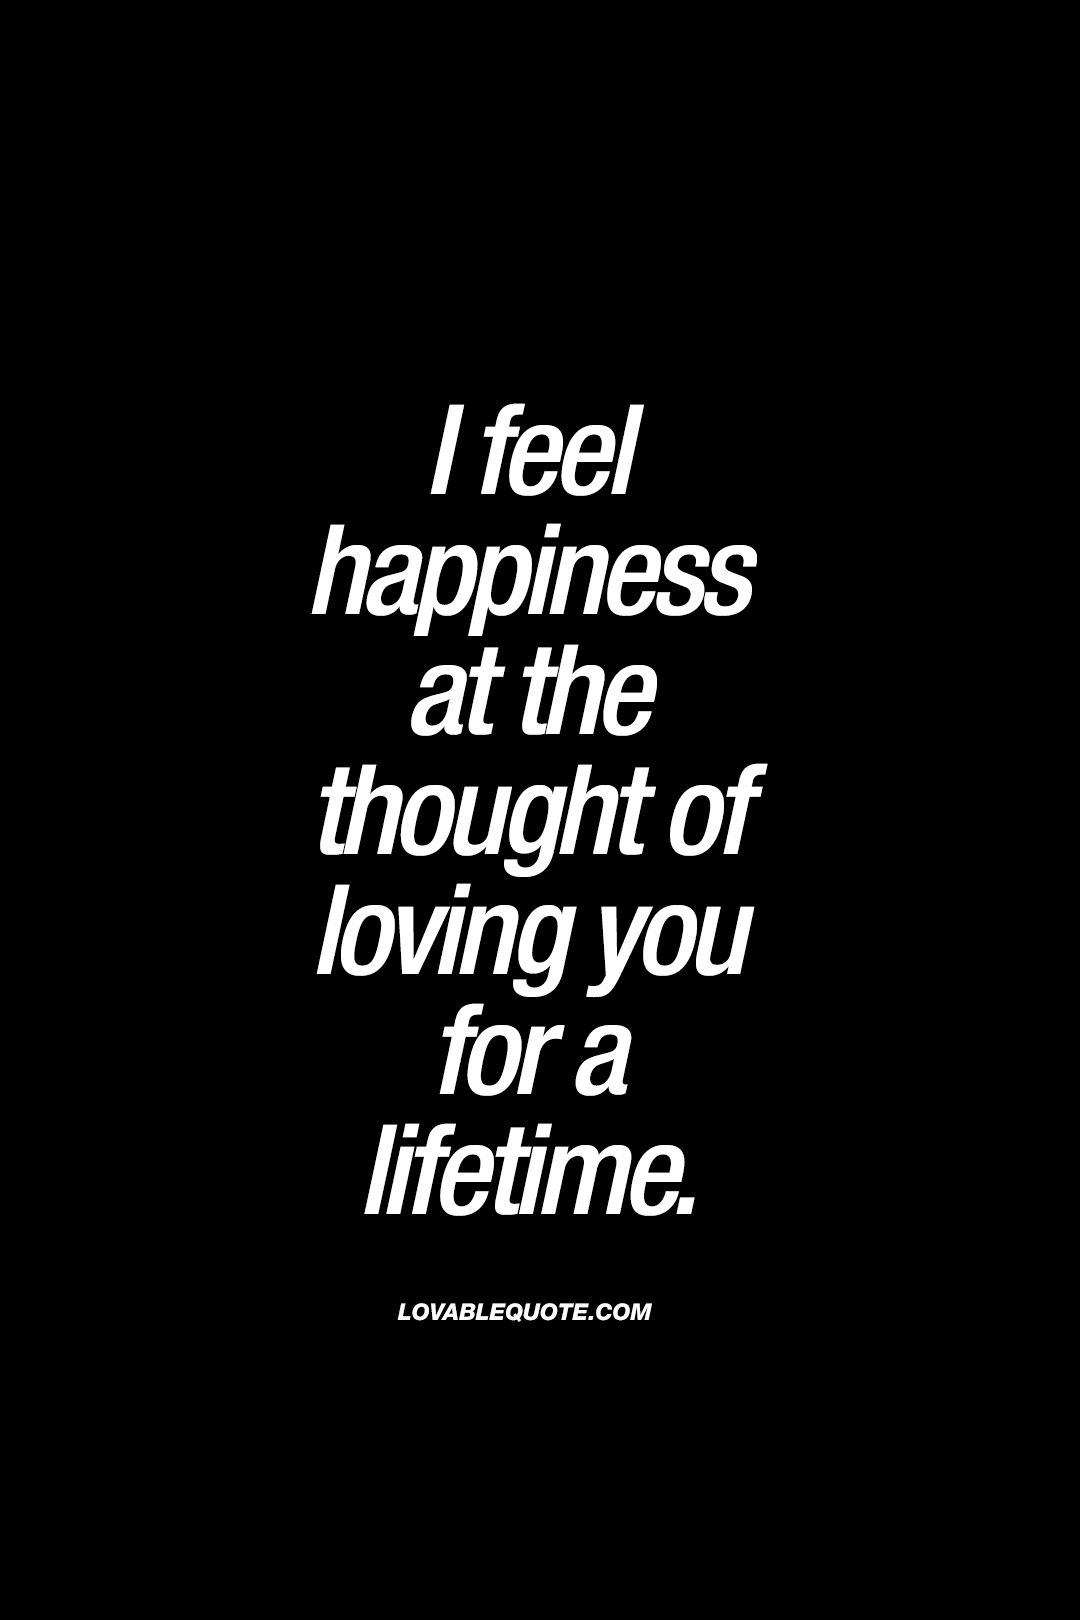 I Feel Happiness At The Thought Of Loving You For A Lifetime